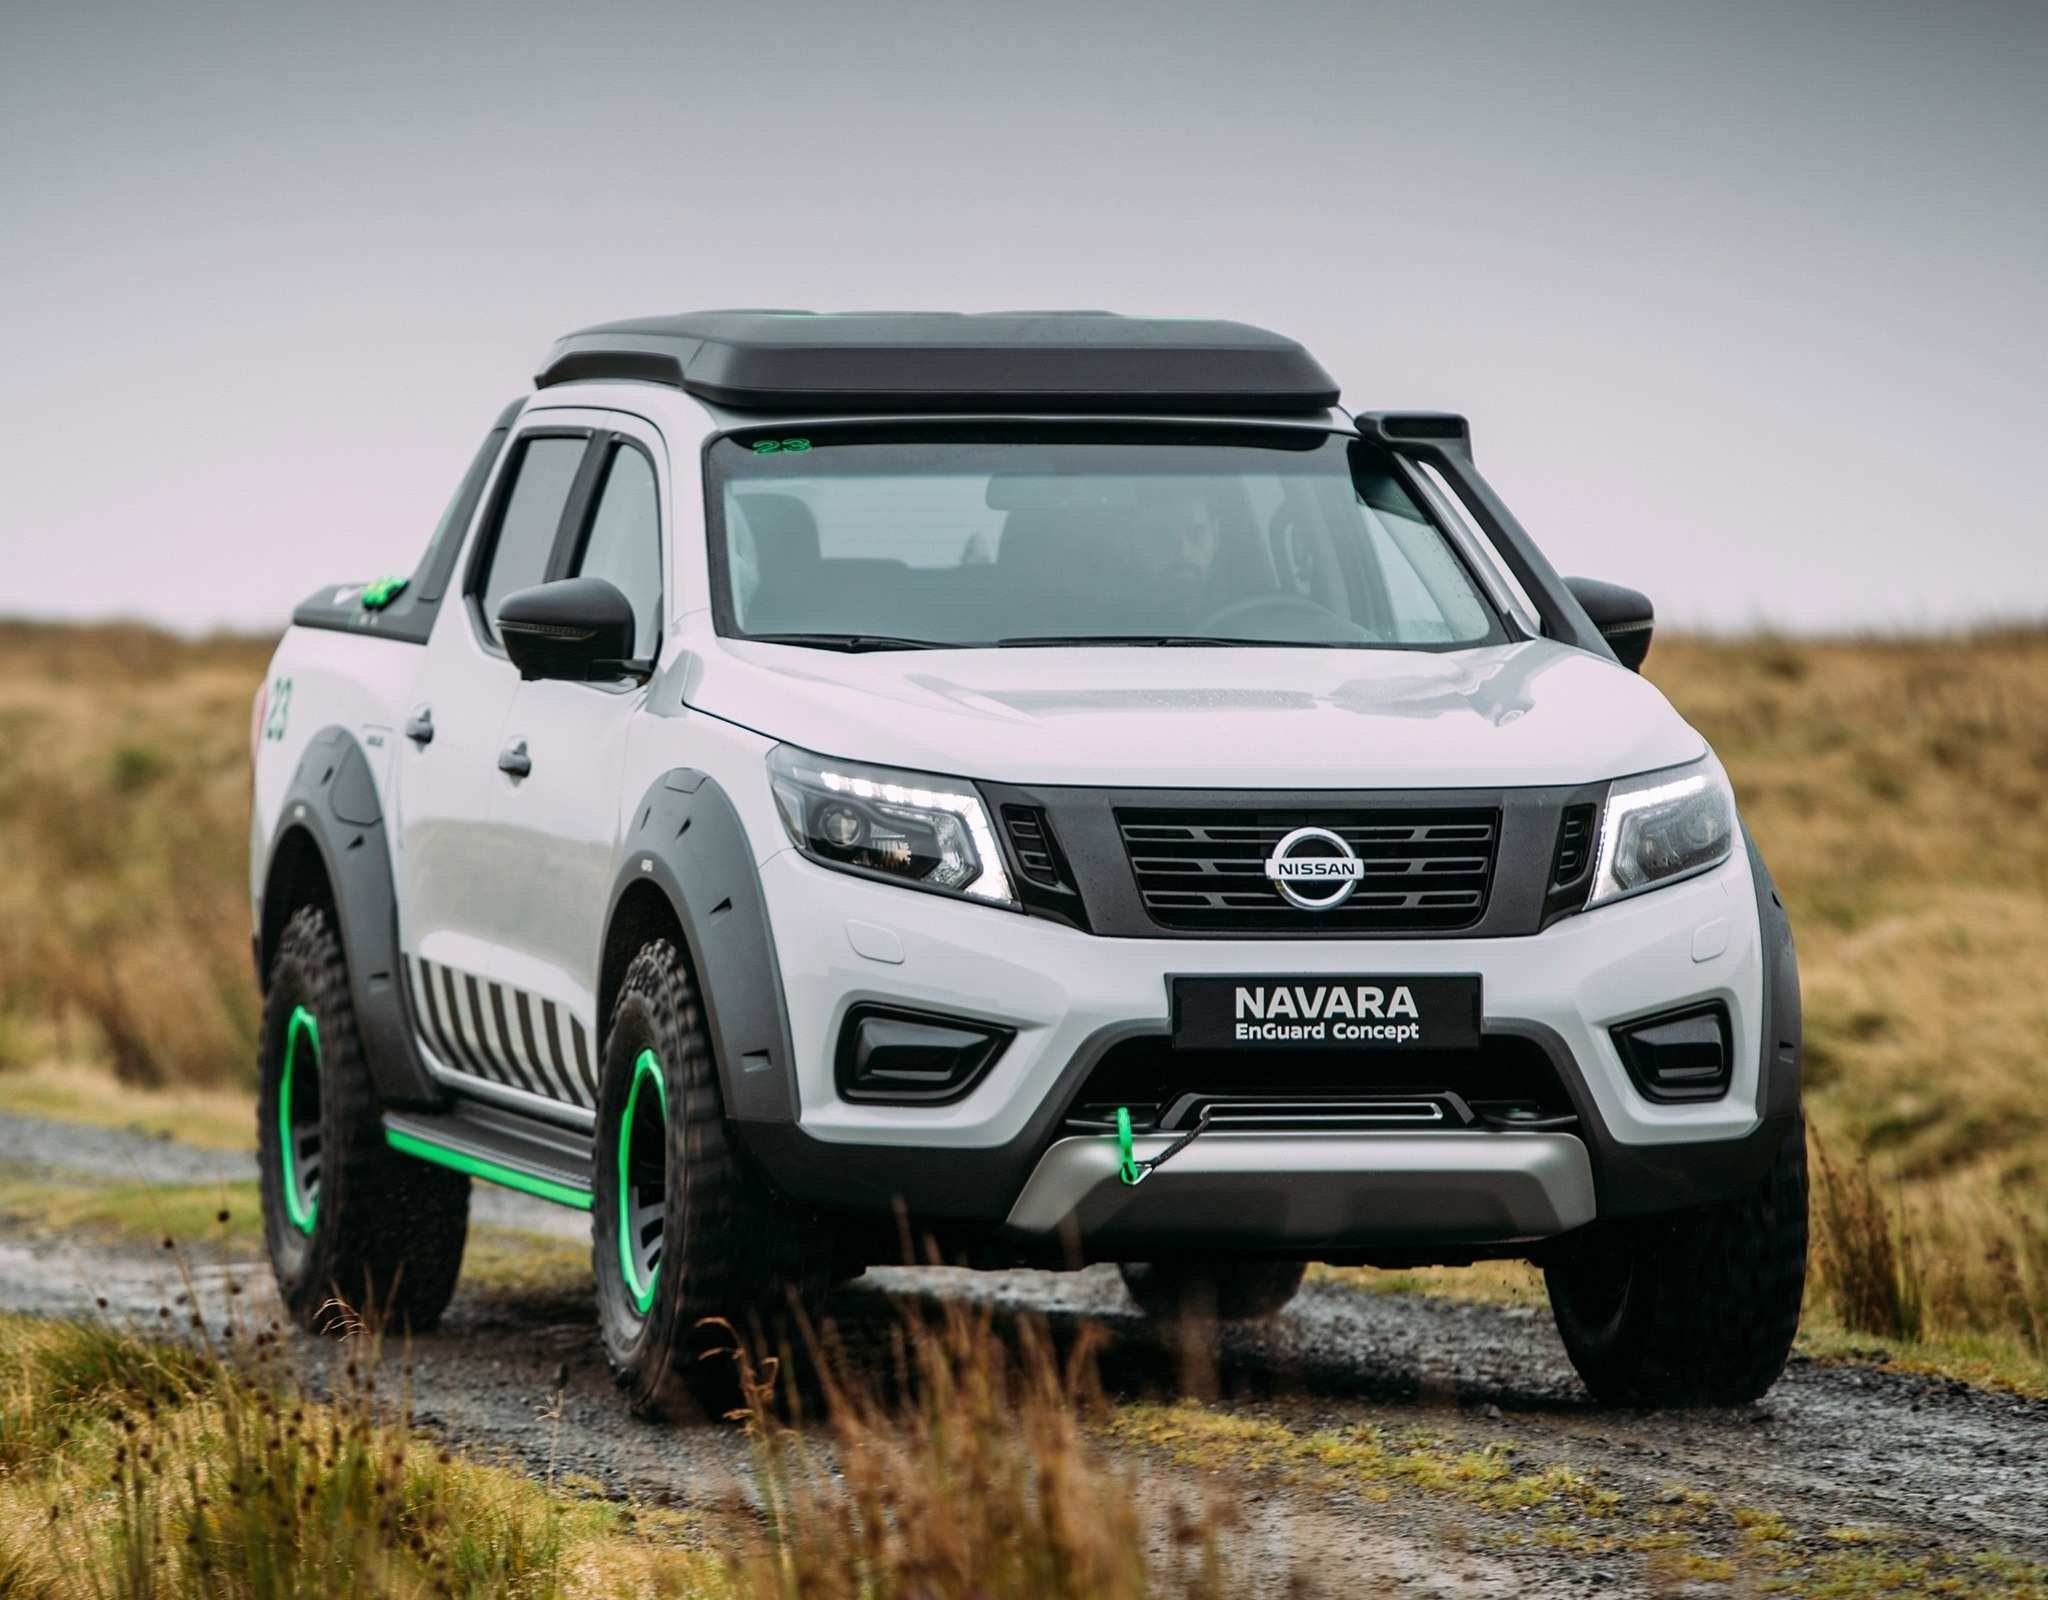 70 All New Nissan Navara 2020 Performance and New Engine with Nissan Navara 2020